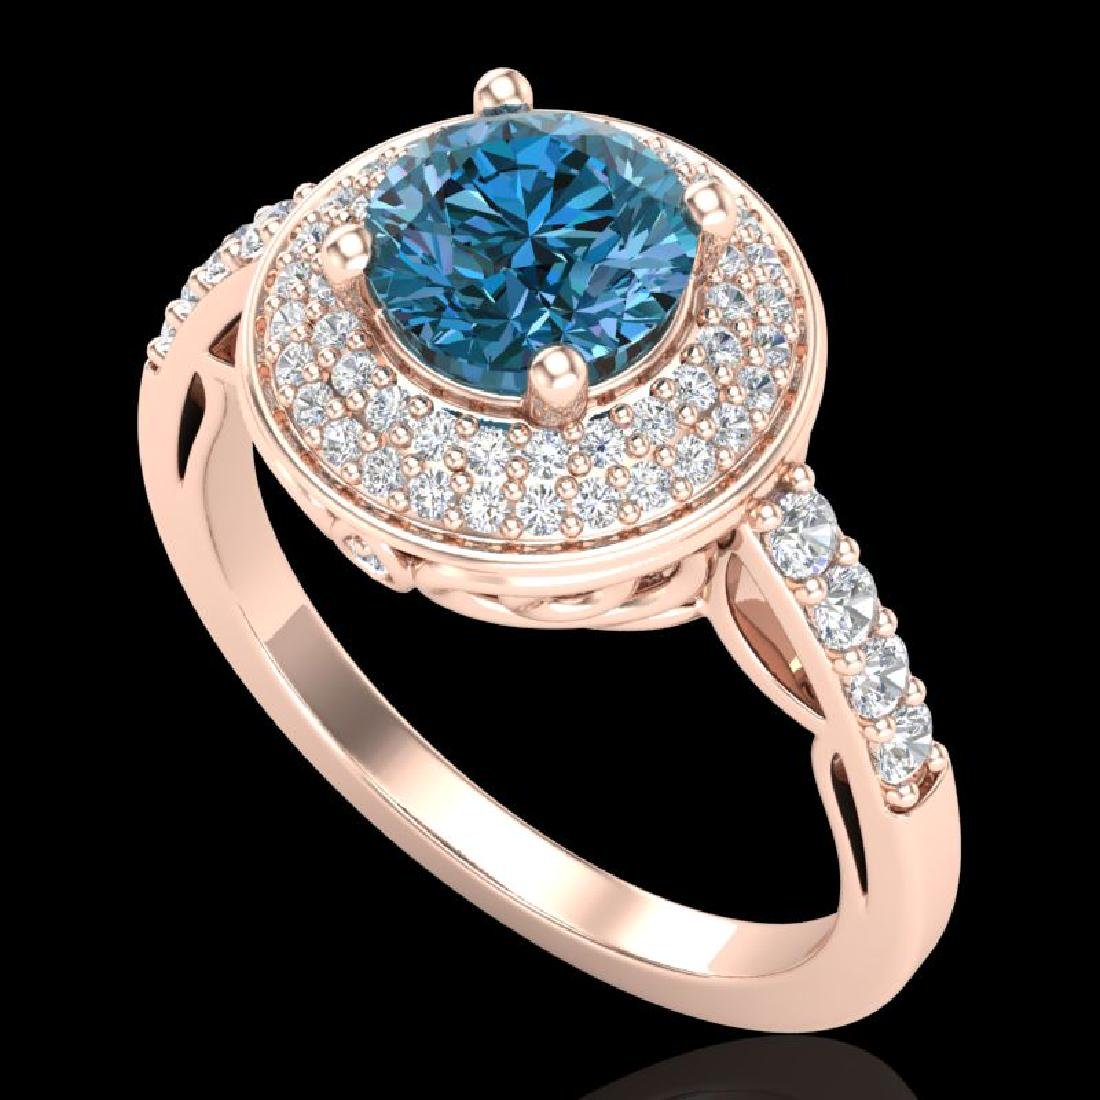 1.7 CTW Intense Blue Diamond Solitaire Engagement Art